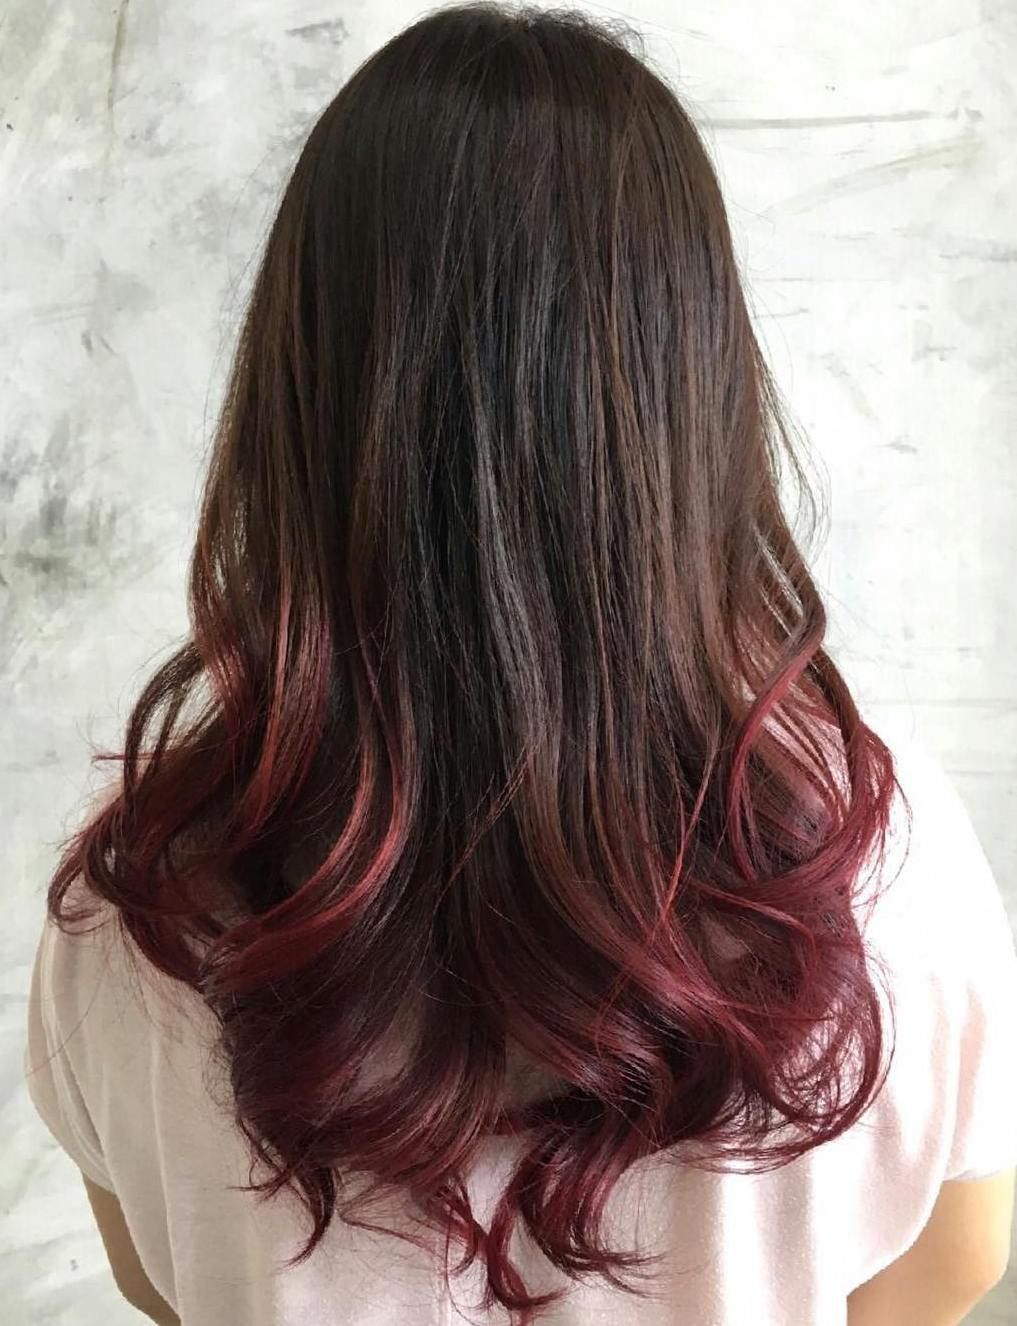 40 Vivid Ideas for Black Ombre Hair | Dip dyed, Black ...